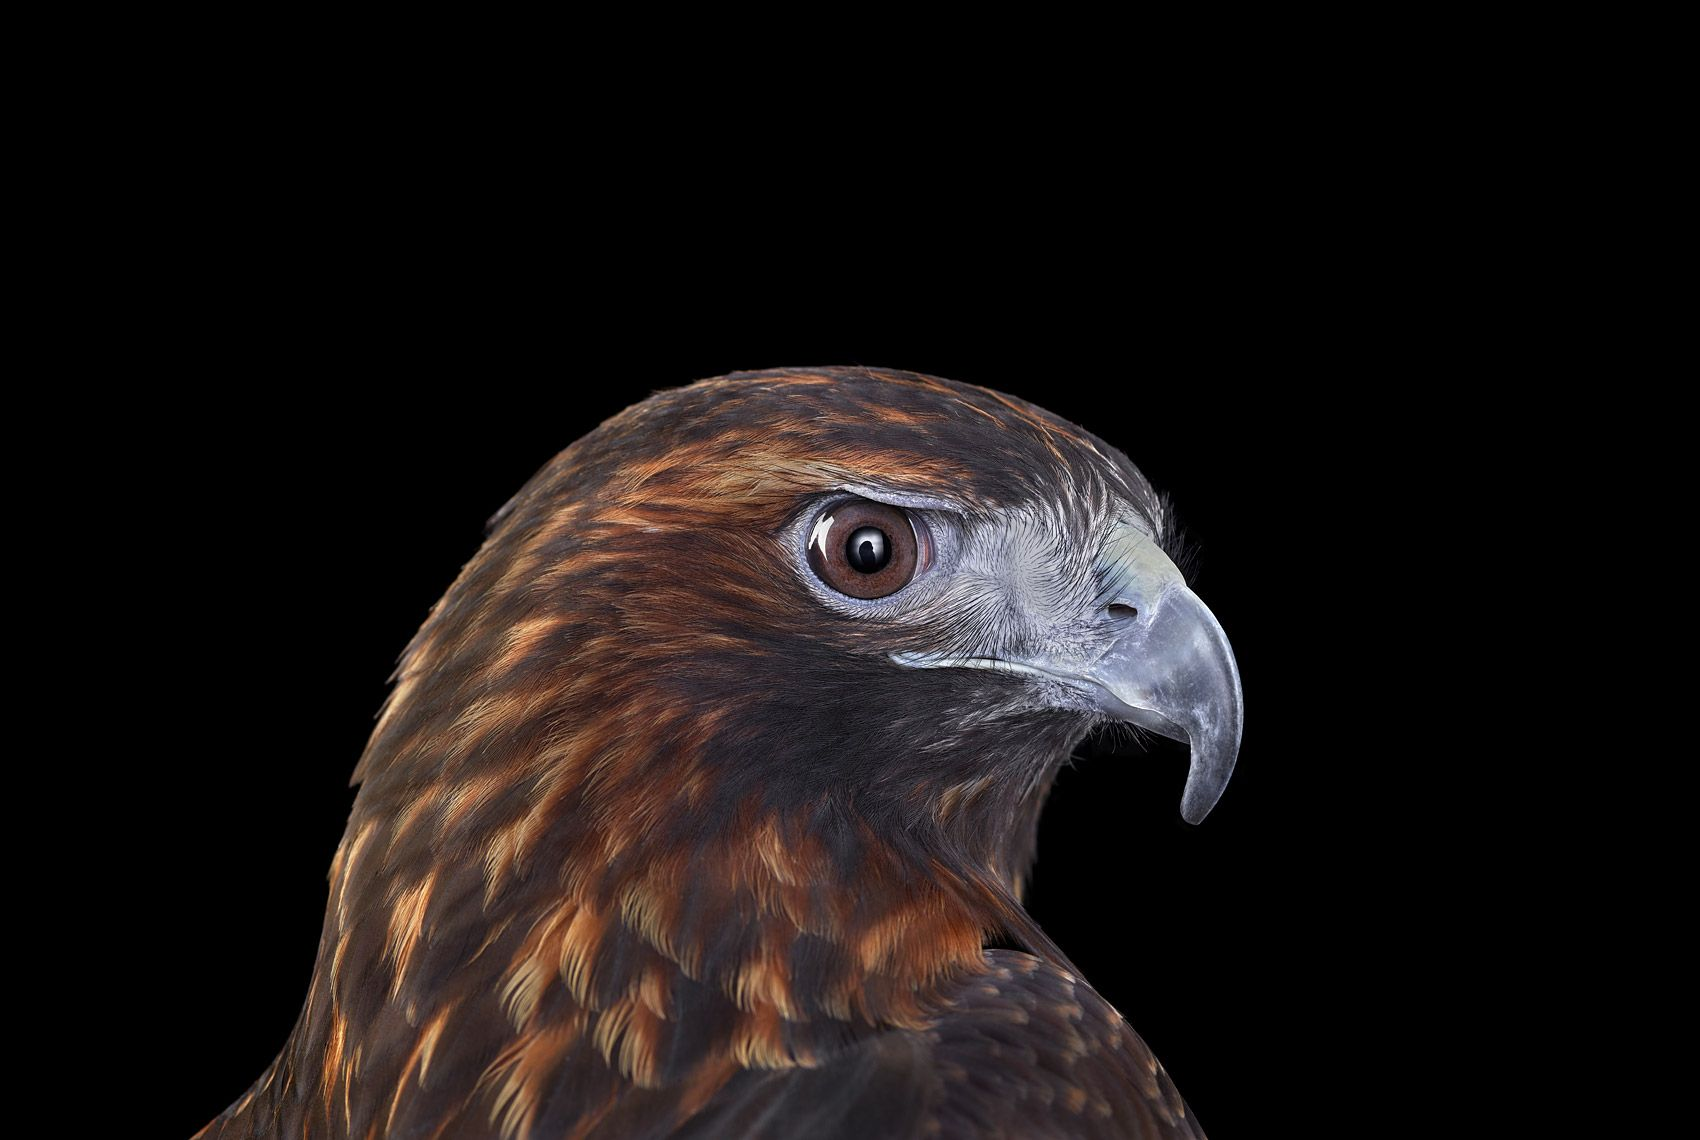 Red Tailed Hawk #4, Albuquerque, NM, 2016,Brad Wilson,Photography